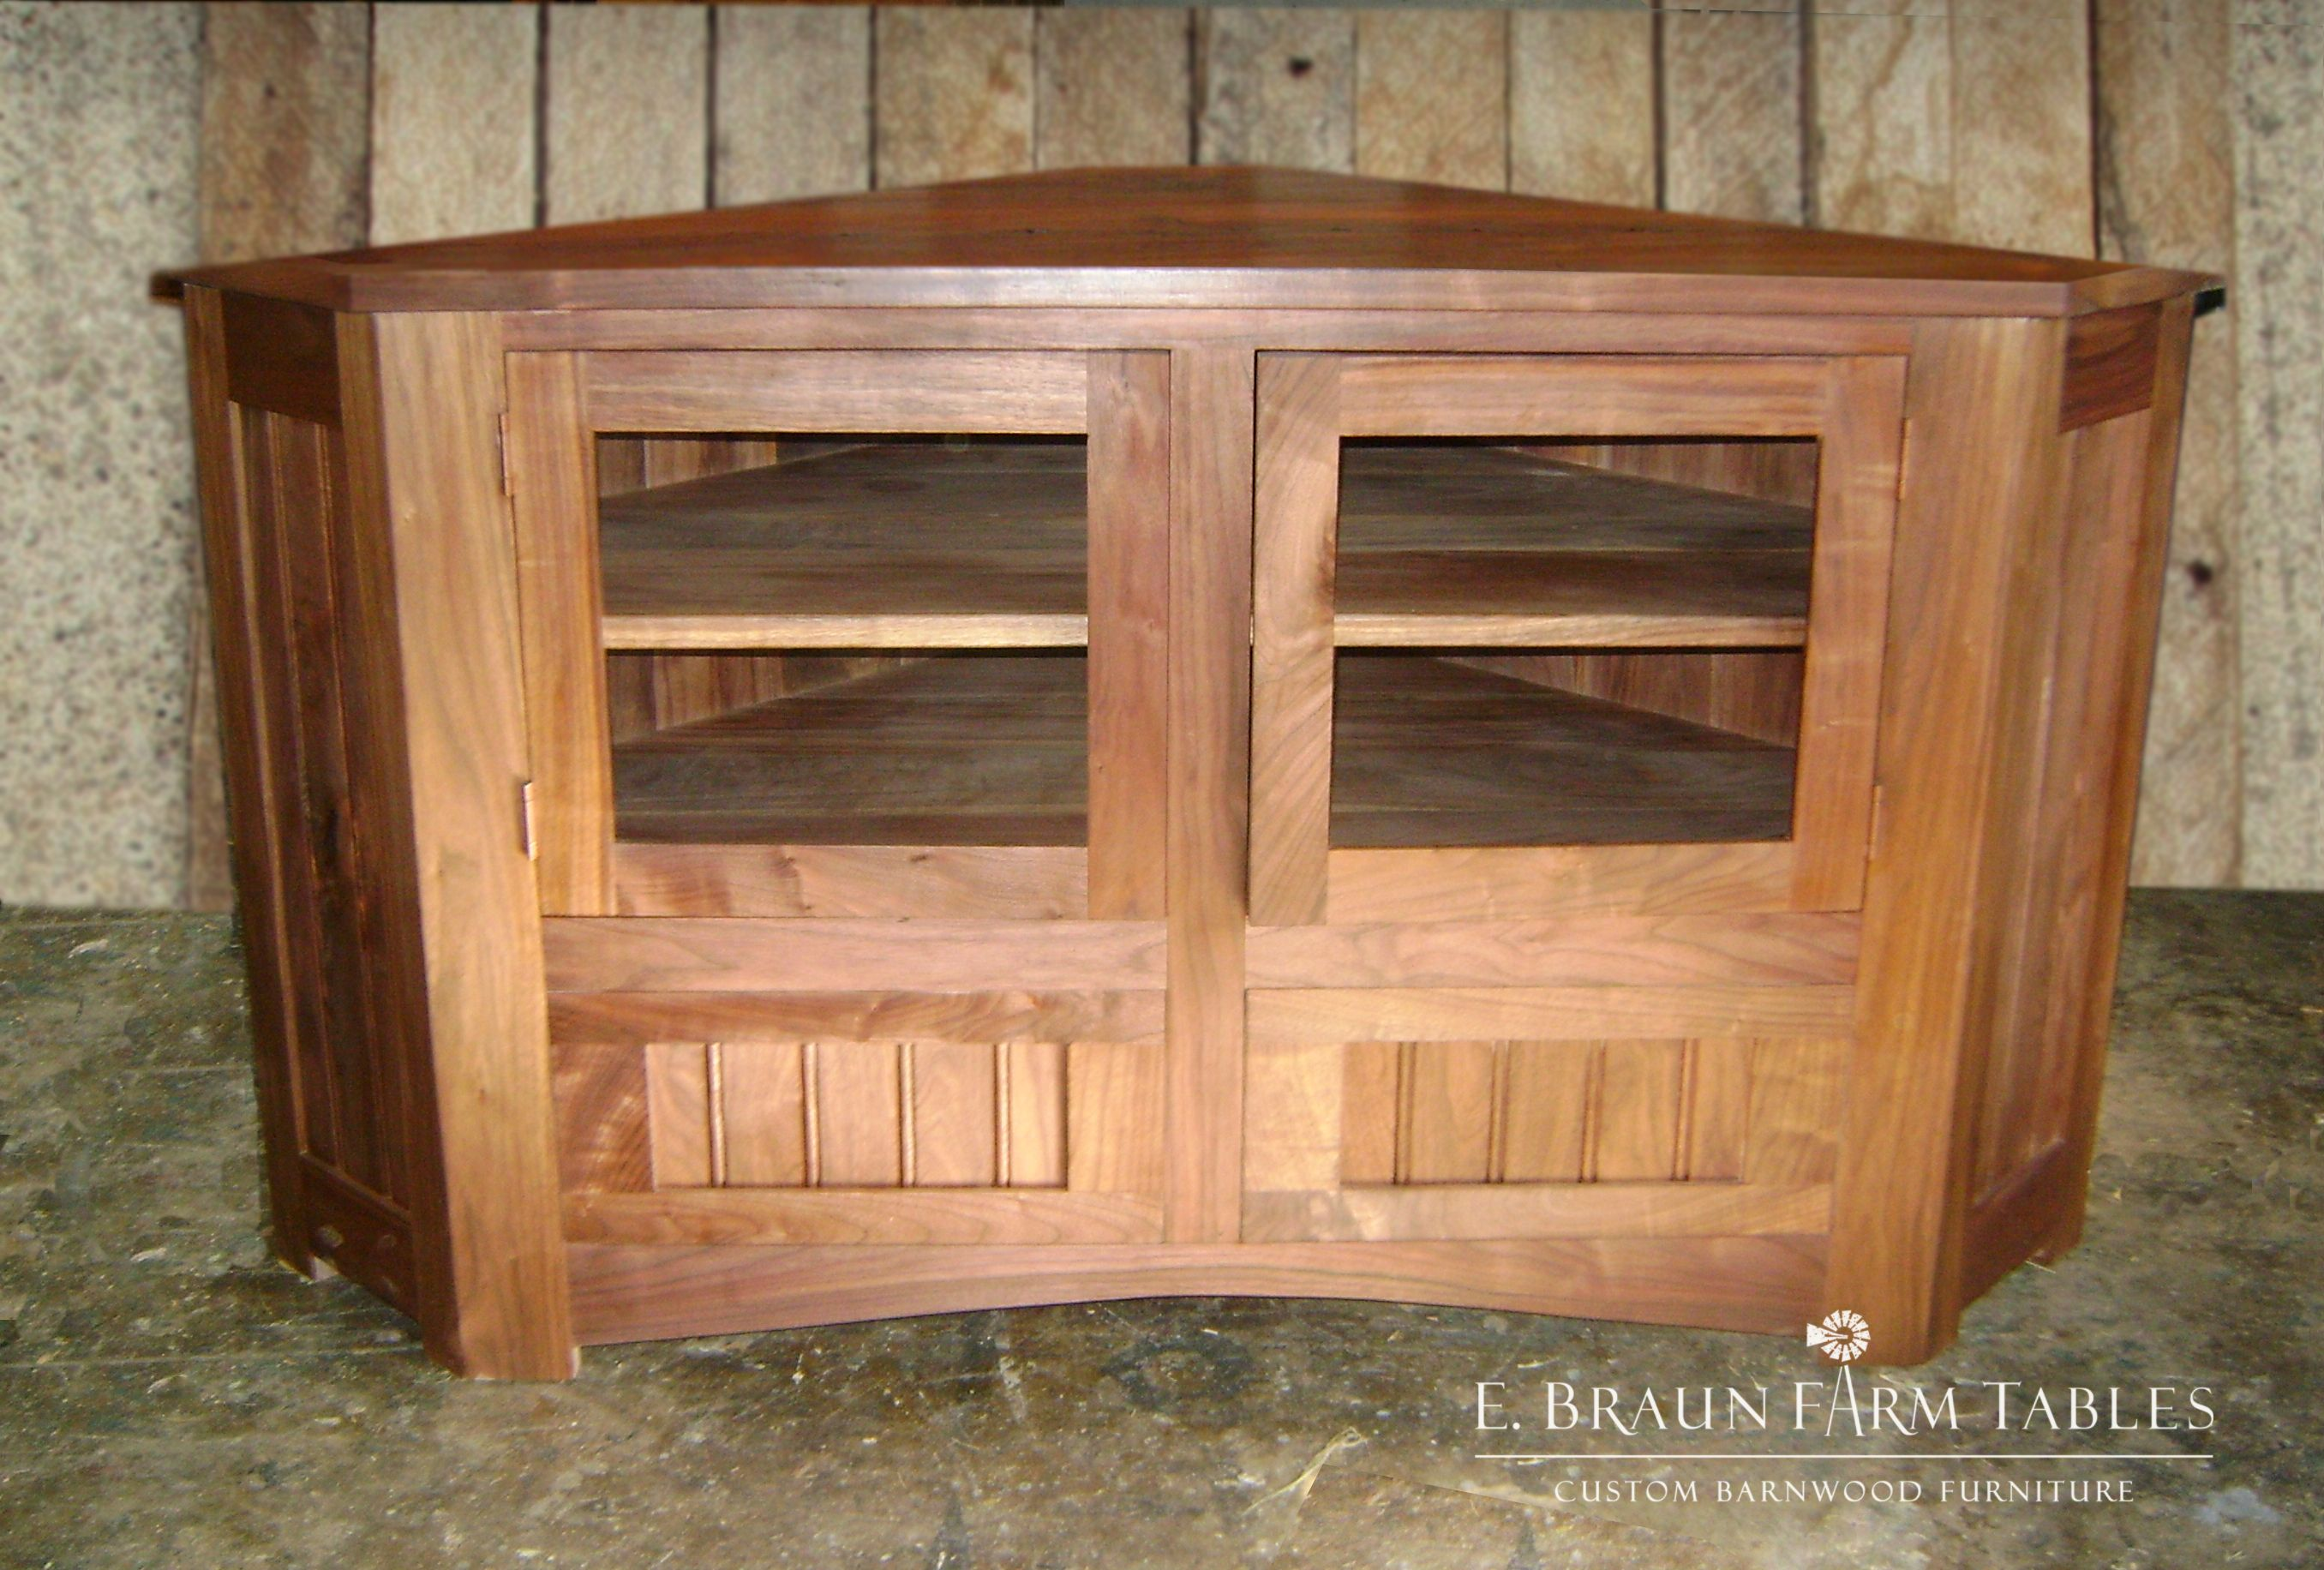 Make The Best Use Of Often Overlooked Space With This Corner Cabinet Tv Stand Handcrafted Using Reclaimed Bar Farm Table Reclaimed Barn Wood Barnwood Furniture